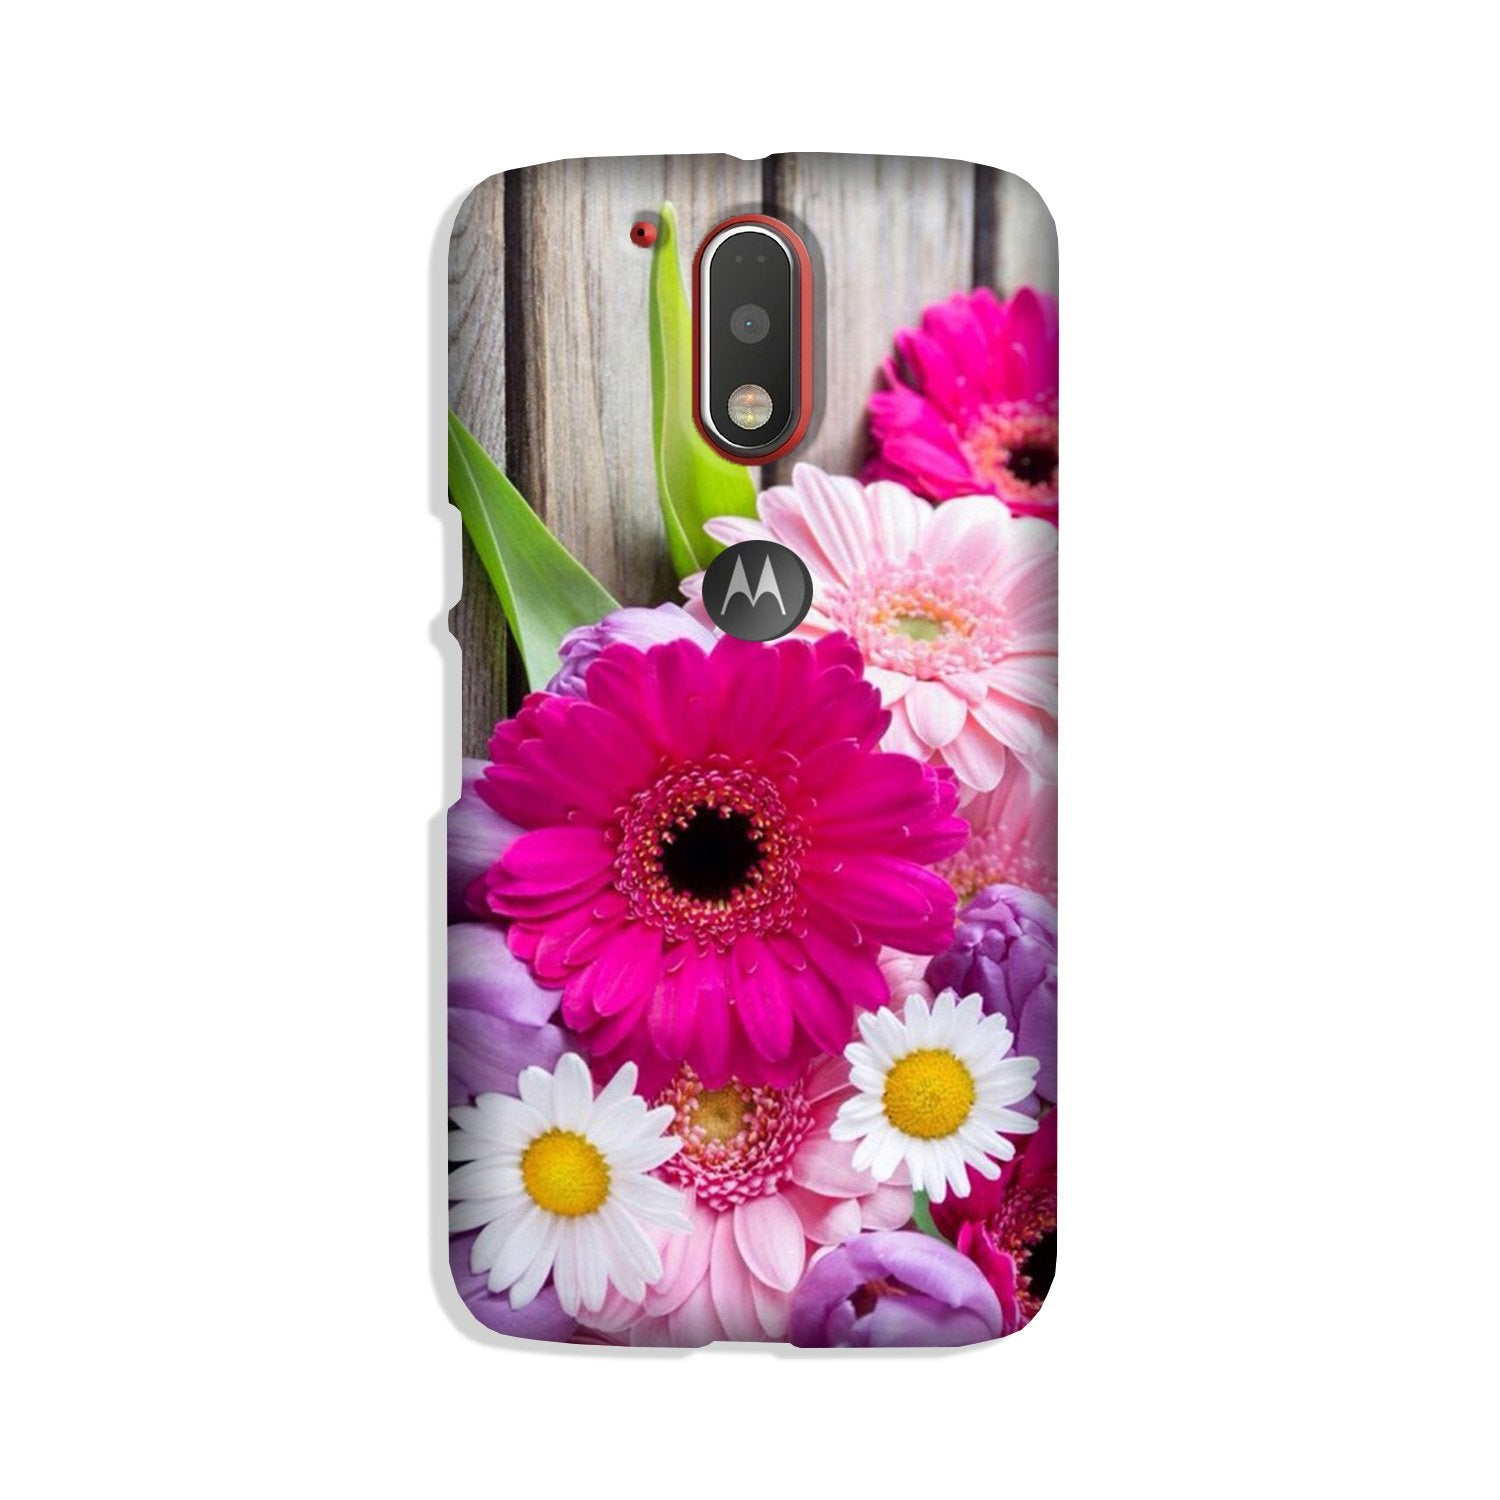 Coloful Daisy Case for Moto G4 Plus